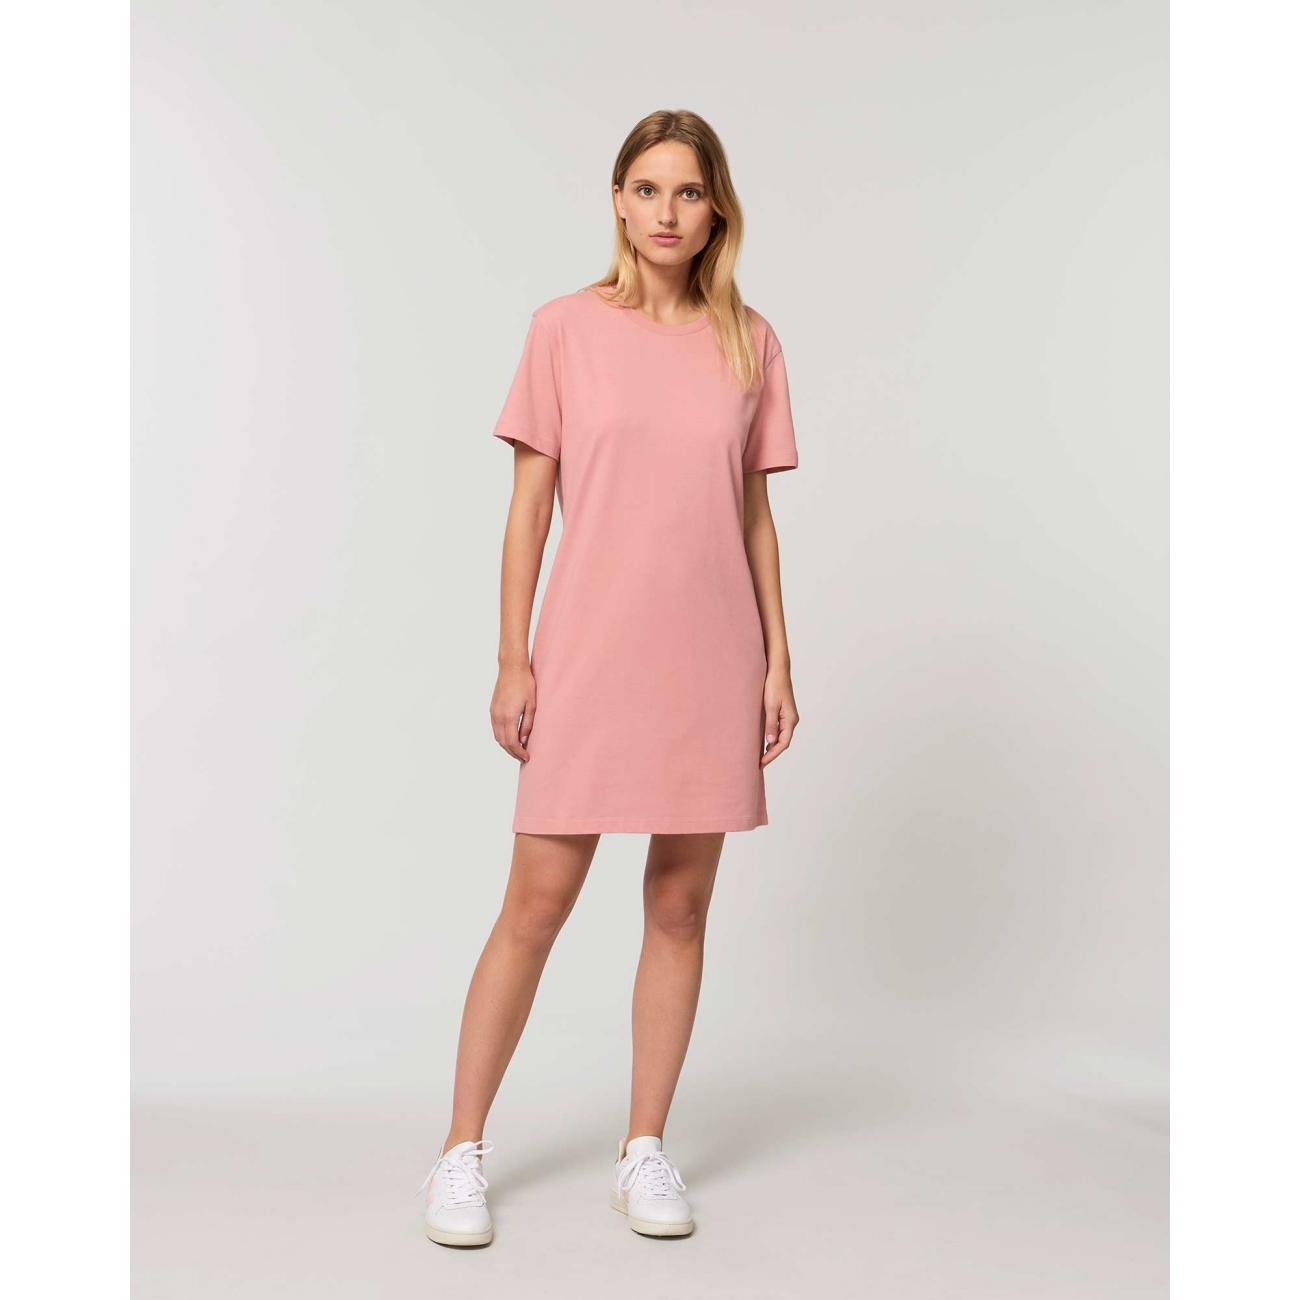 https://tee-shirt-bio.com/9487-thickbox_default/robe-tee-shirt-coton-bio-rose-manches-courtes.jpg